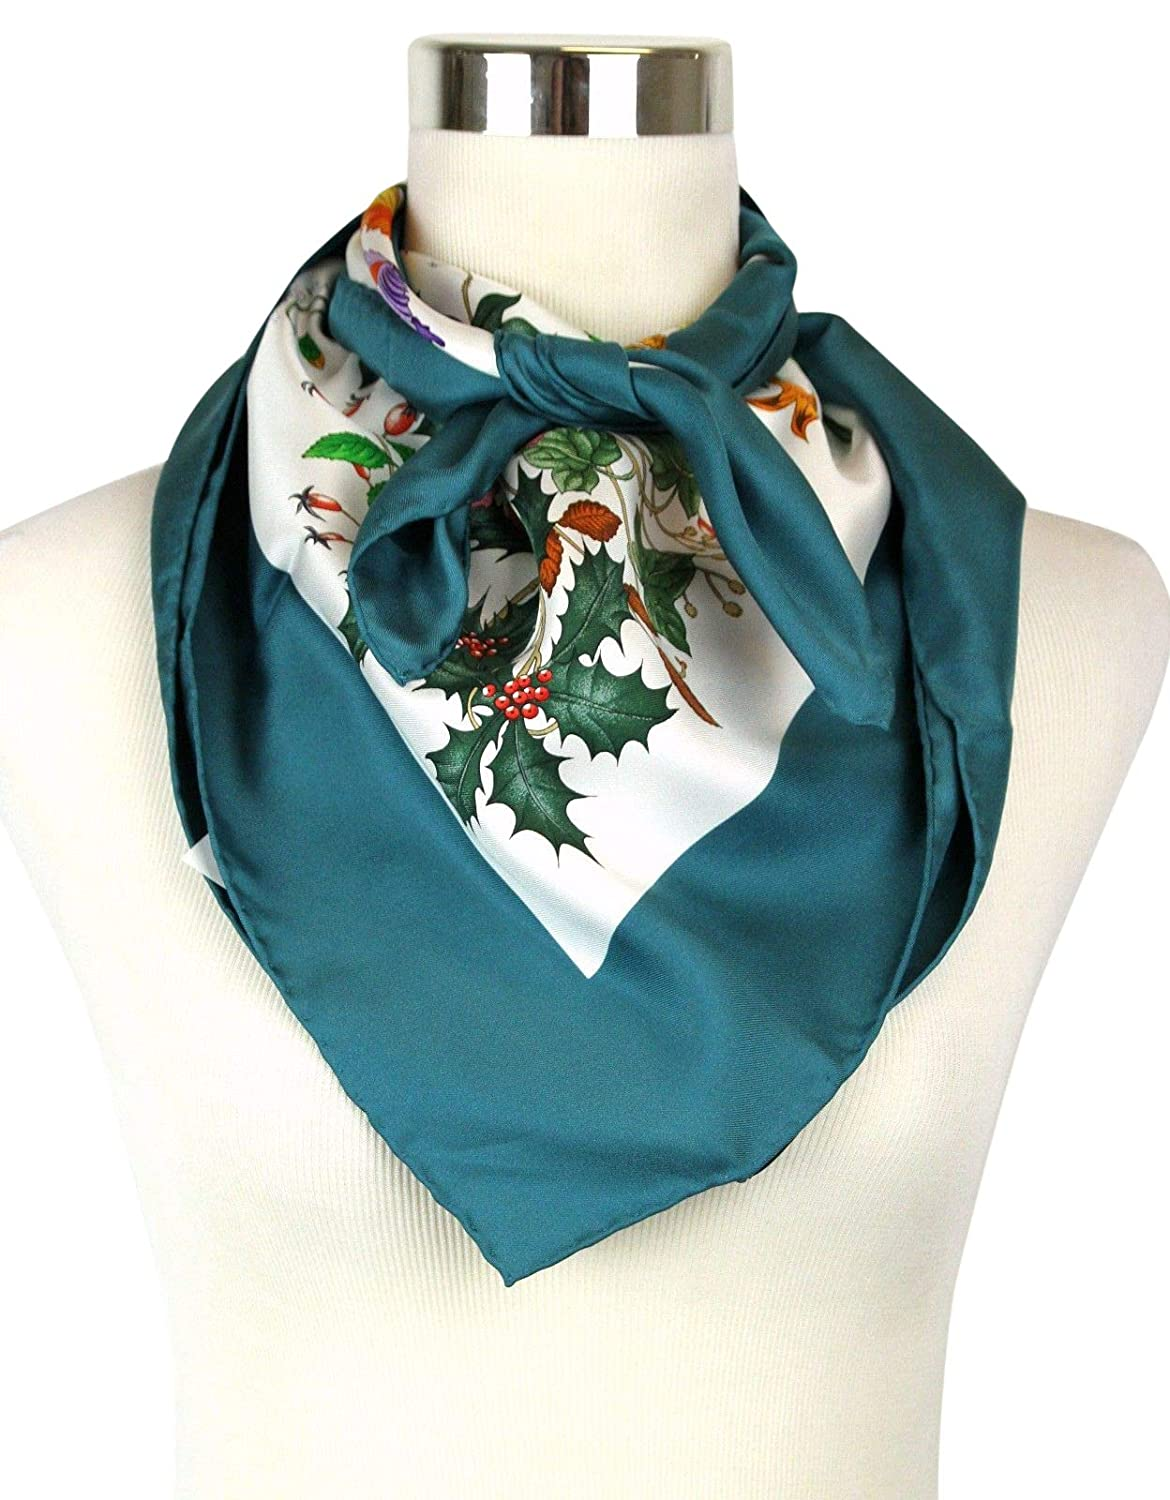 9a2cdc305c Gucci Women's Floral Scarf Green Large Silk Scarf With Trim 022796 ...